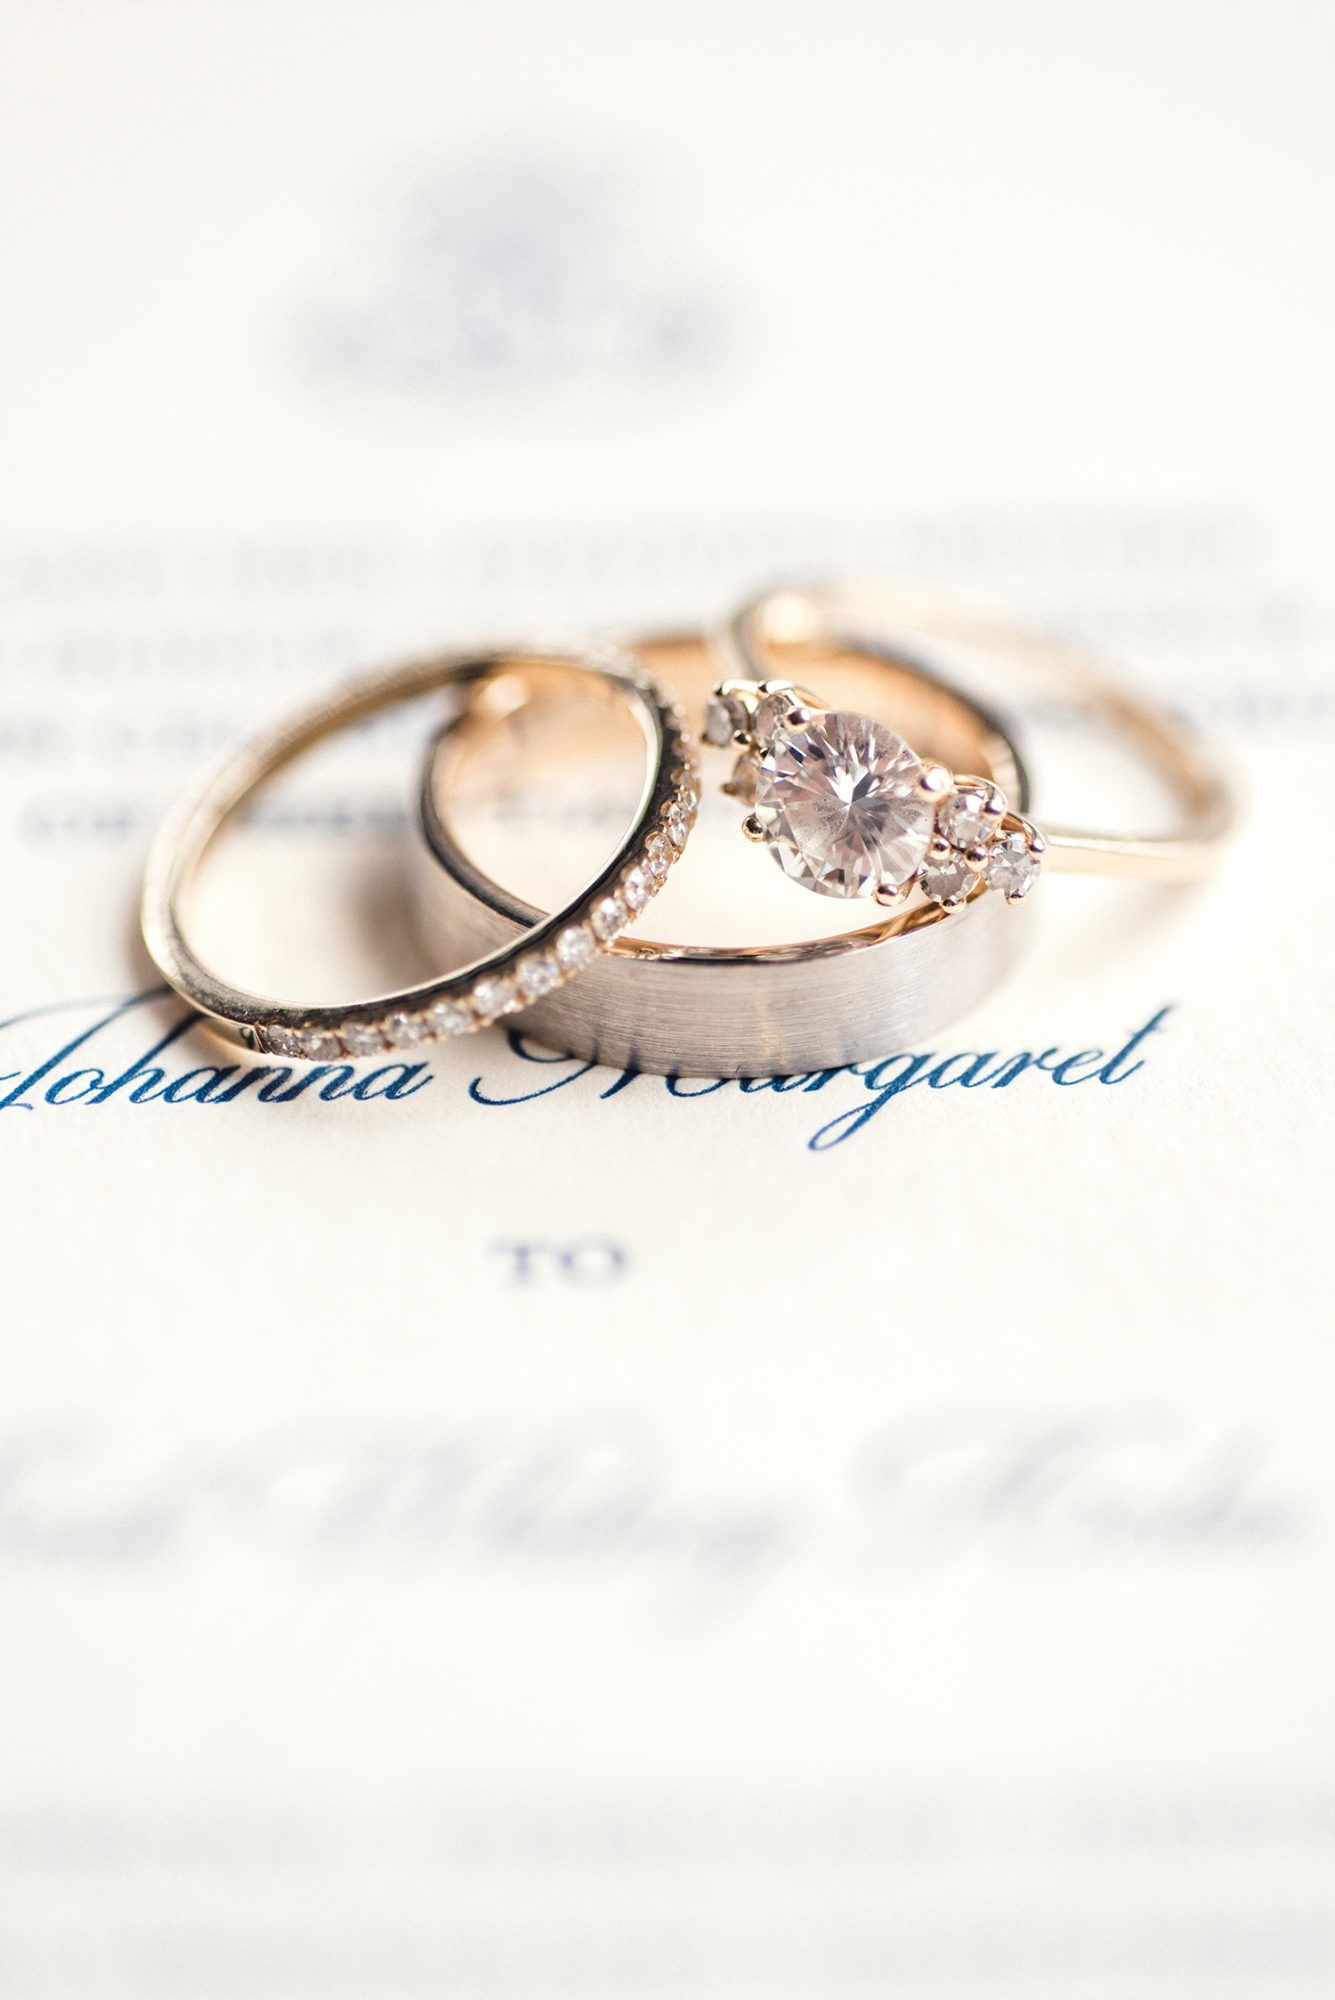 johanna erik wedding rings